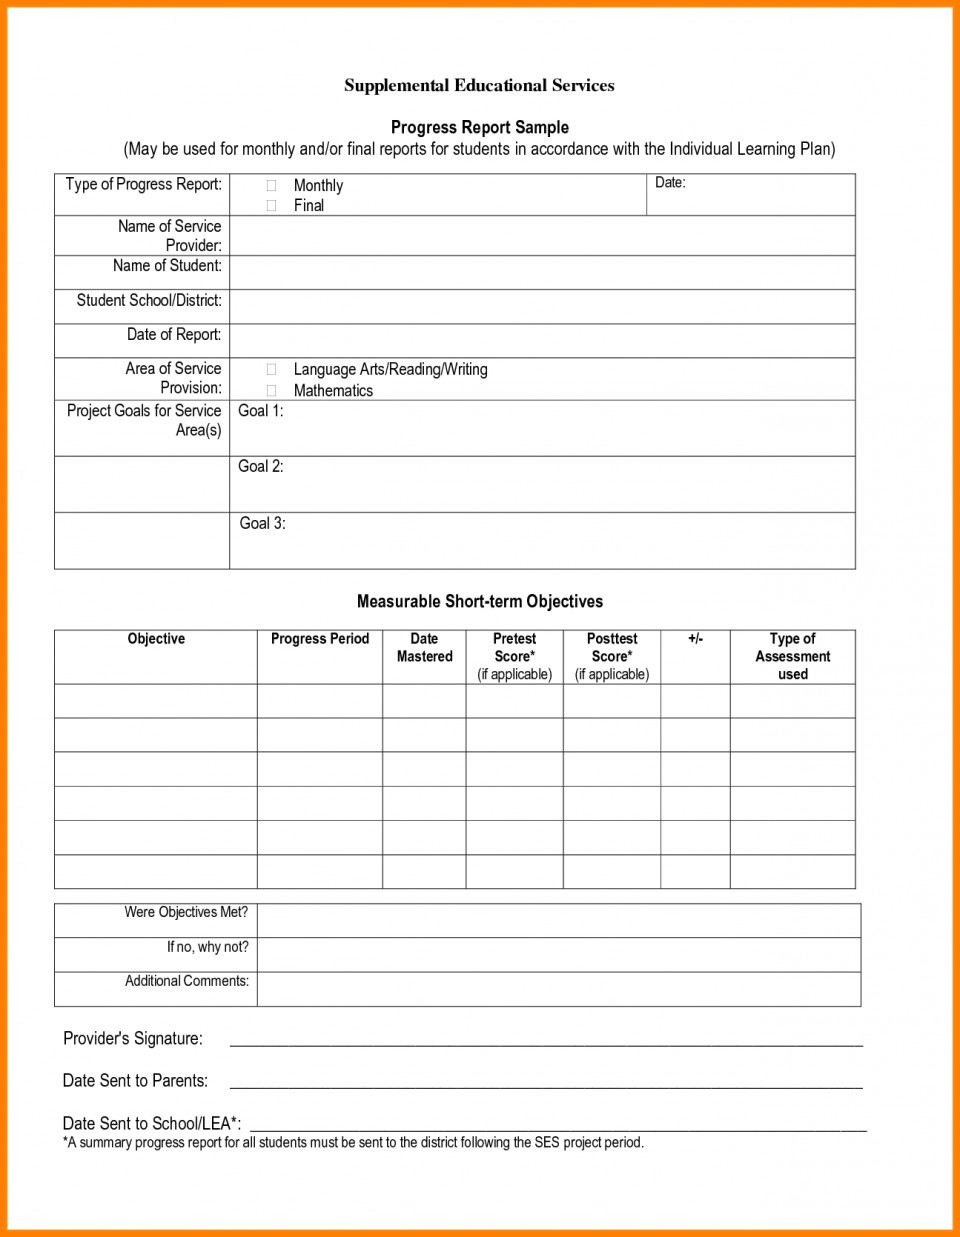 024 School Progress Report Template Doc Elementary Ample Pdf Intended For Educational Progress Report Template